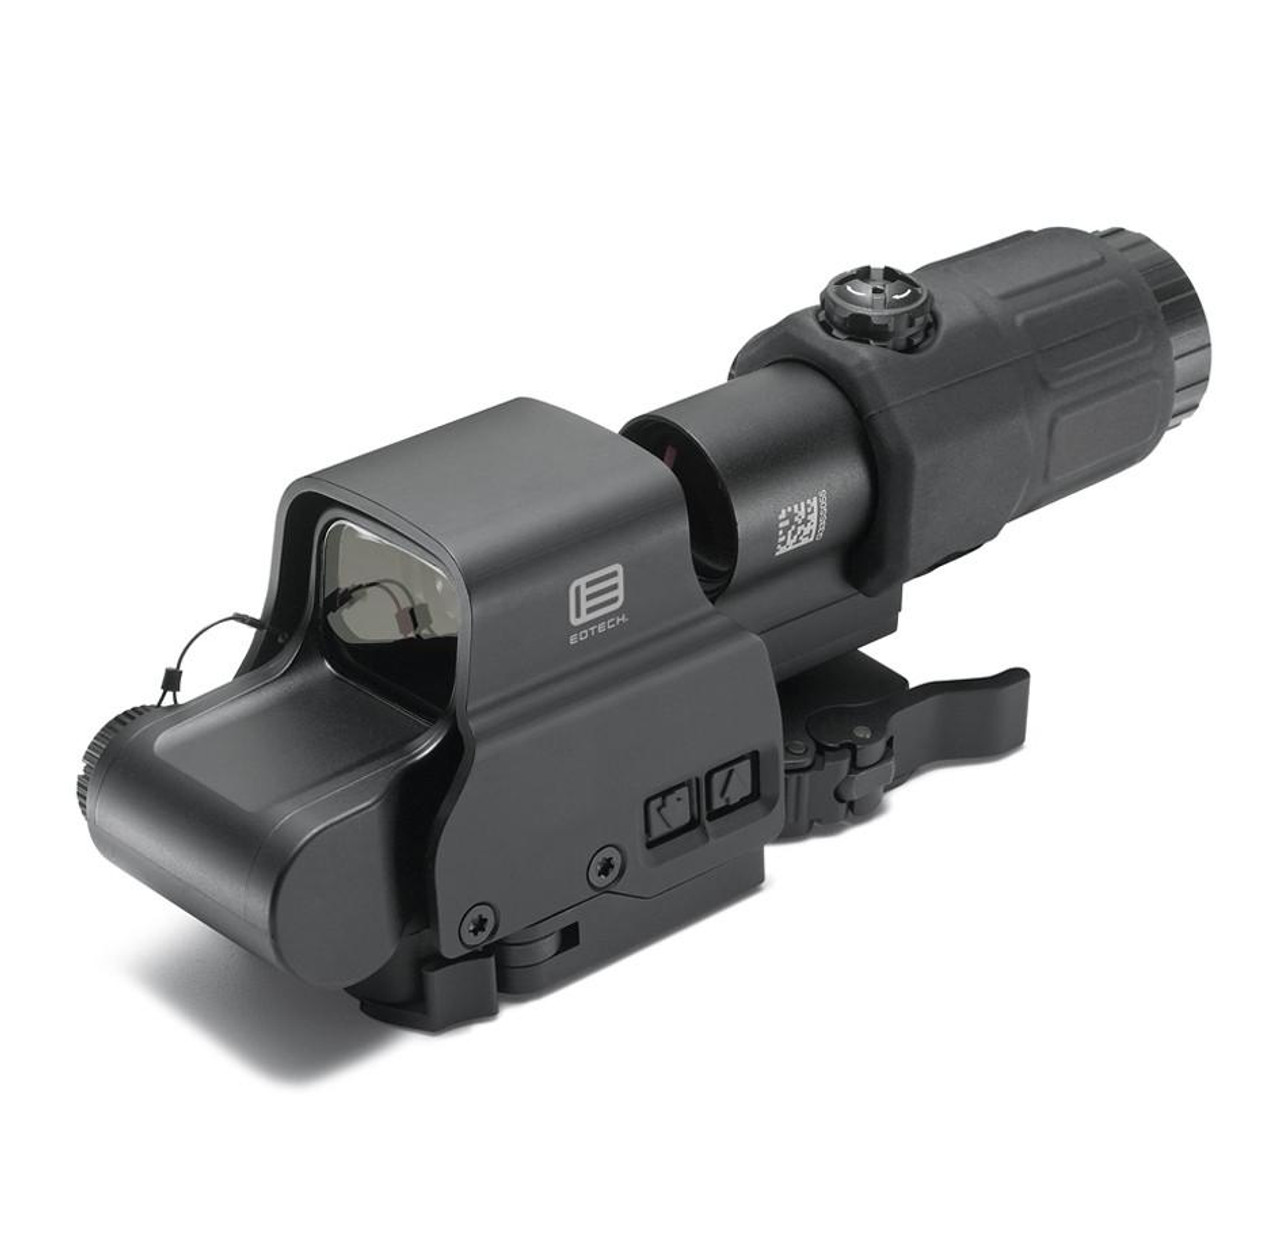 L-3 EoTech HHS2 EXPS2-2 with G33.STS Magnifier